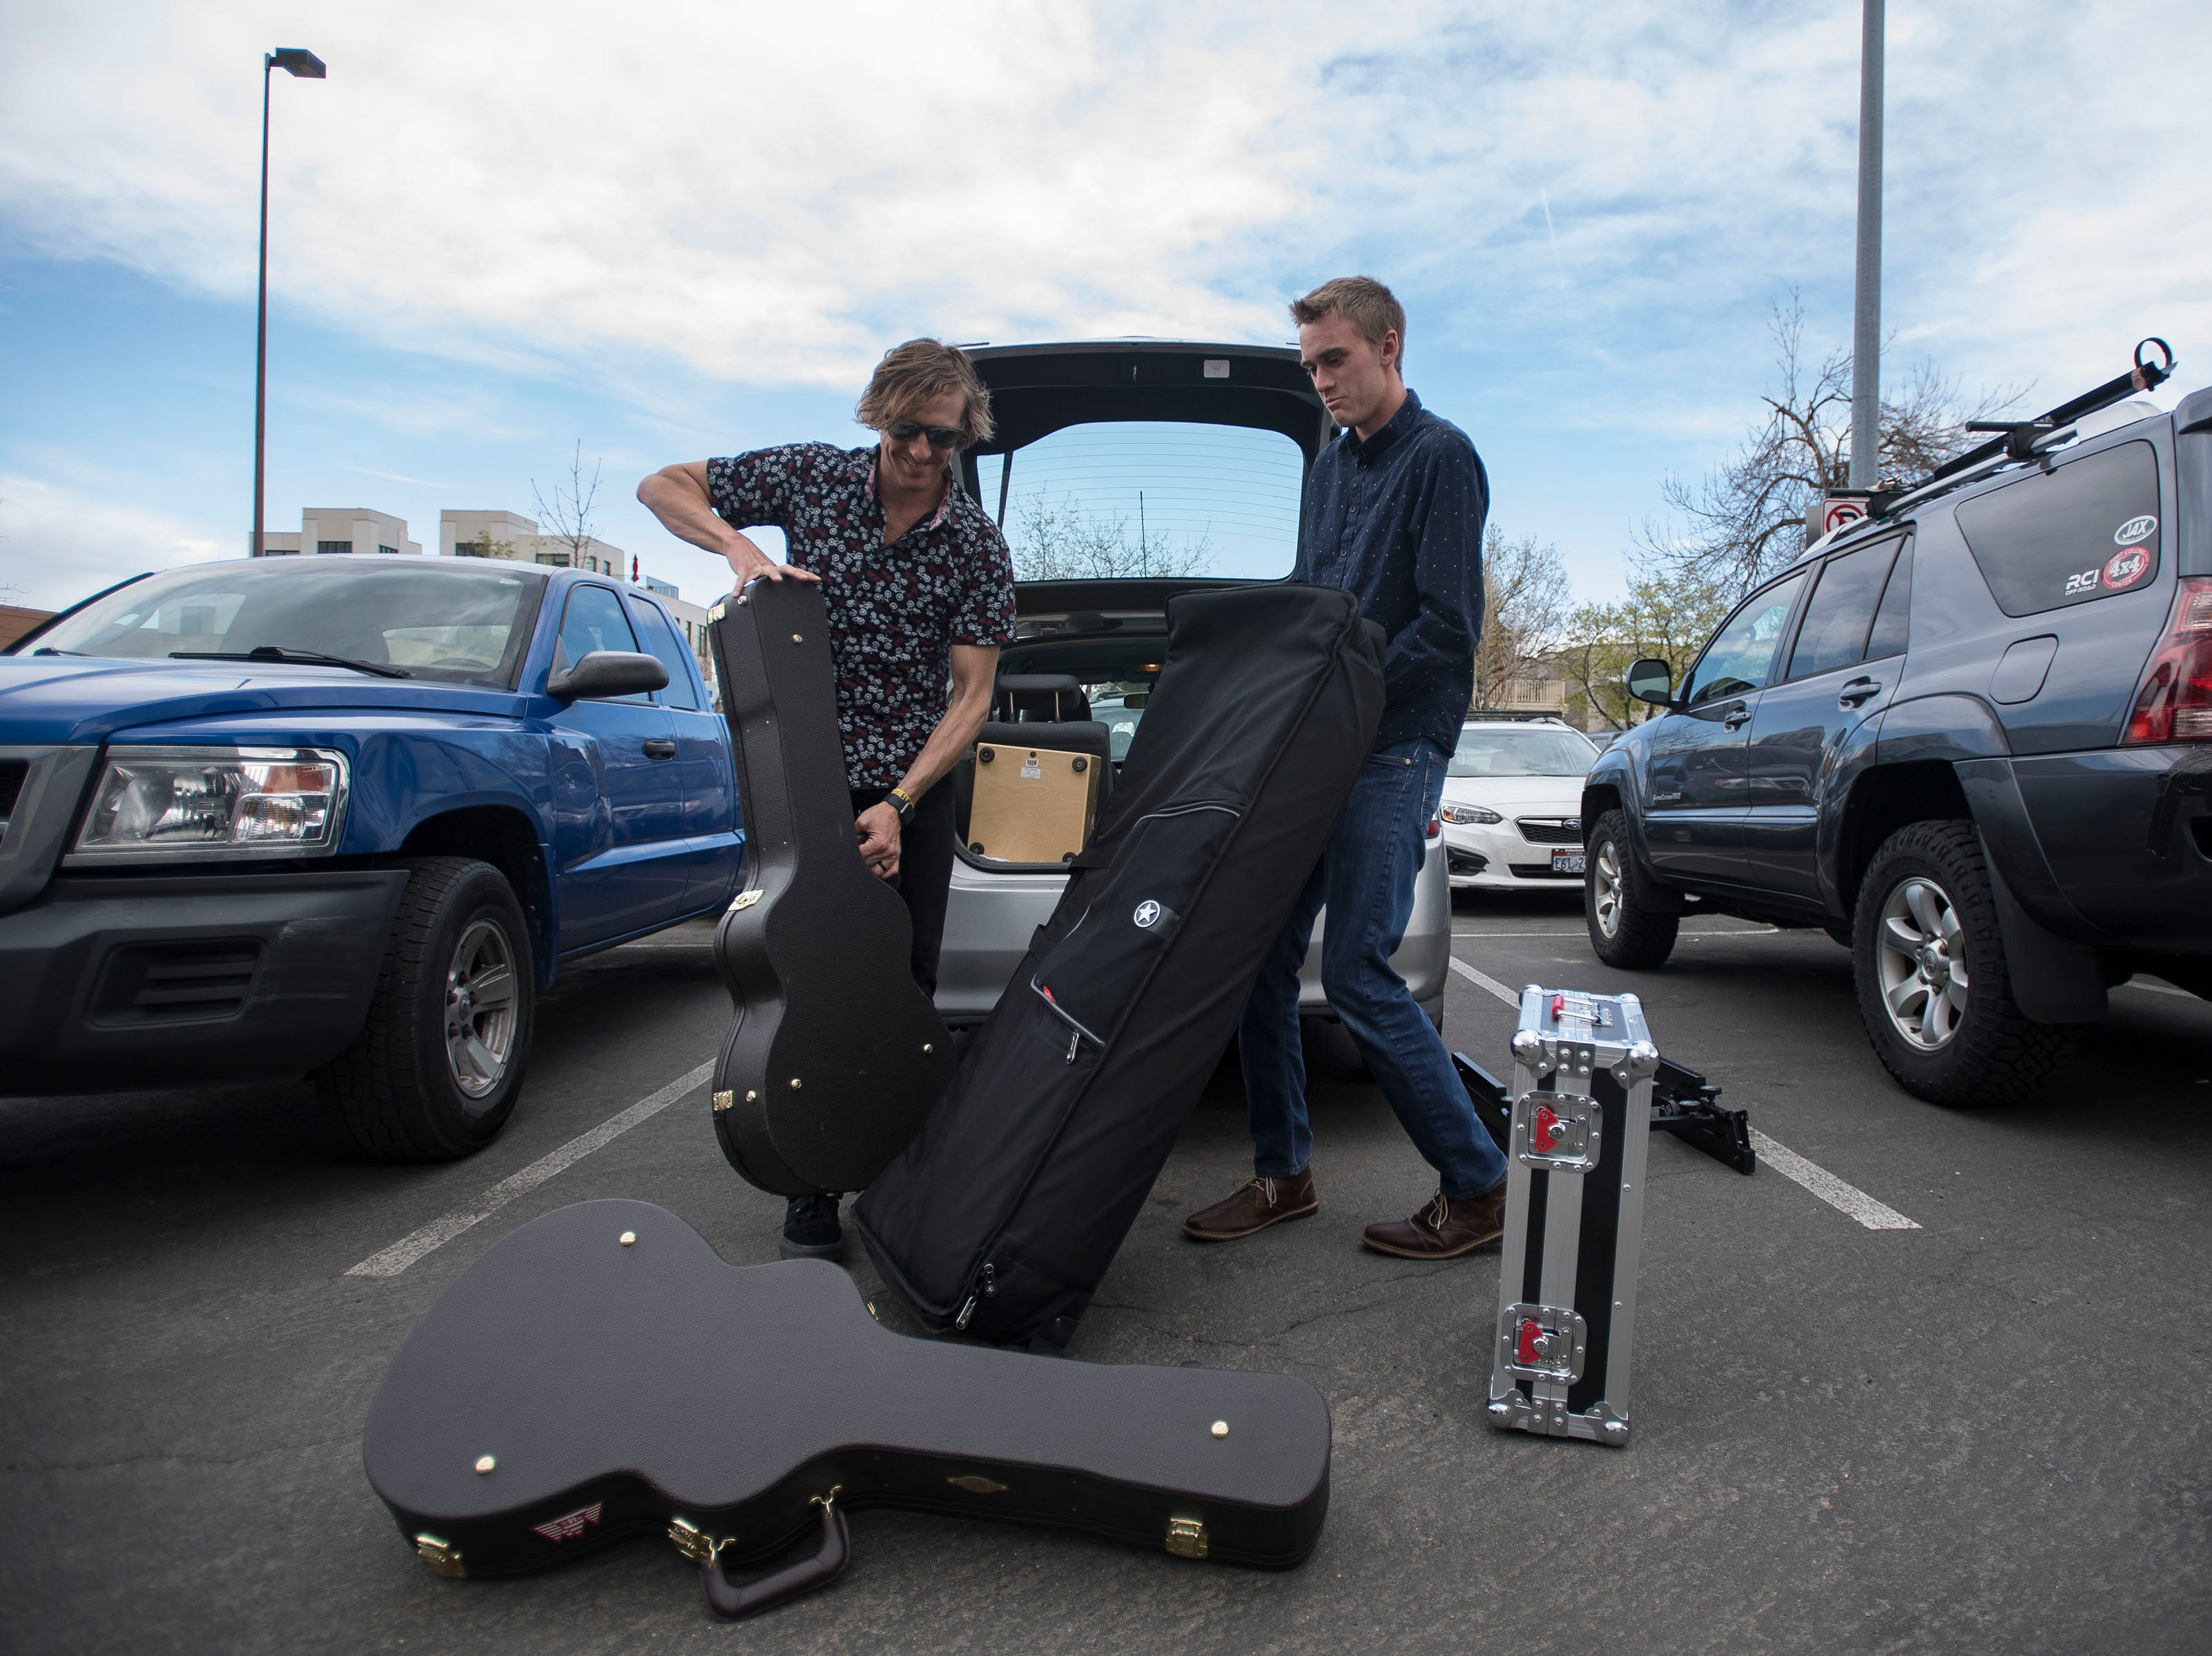 The 14ers members Ryan Kirkpatrick, left, and Jacob Anderson pull instruments out of their car before heading in and setting up at Tony's Bar & Rooftop during the FoCoMX XI music festival on Friday, April 26, 2019, in Fort Collins, Colo.